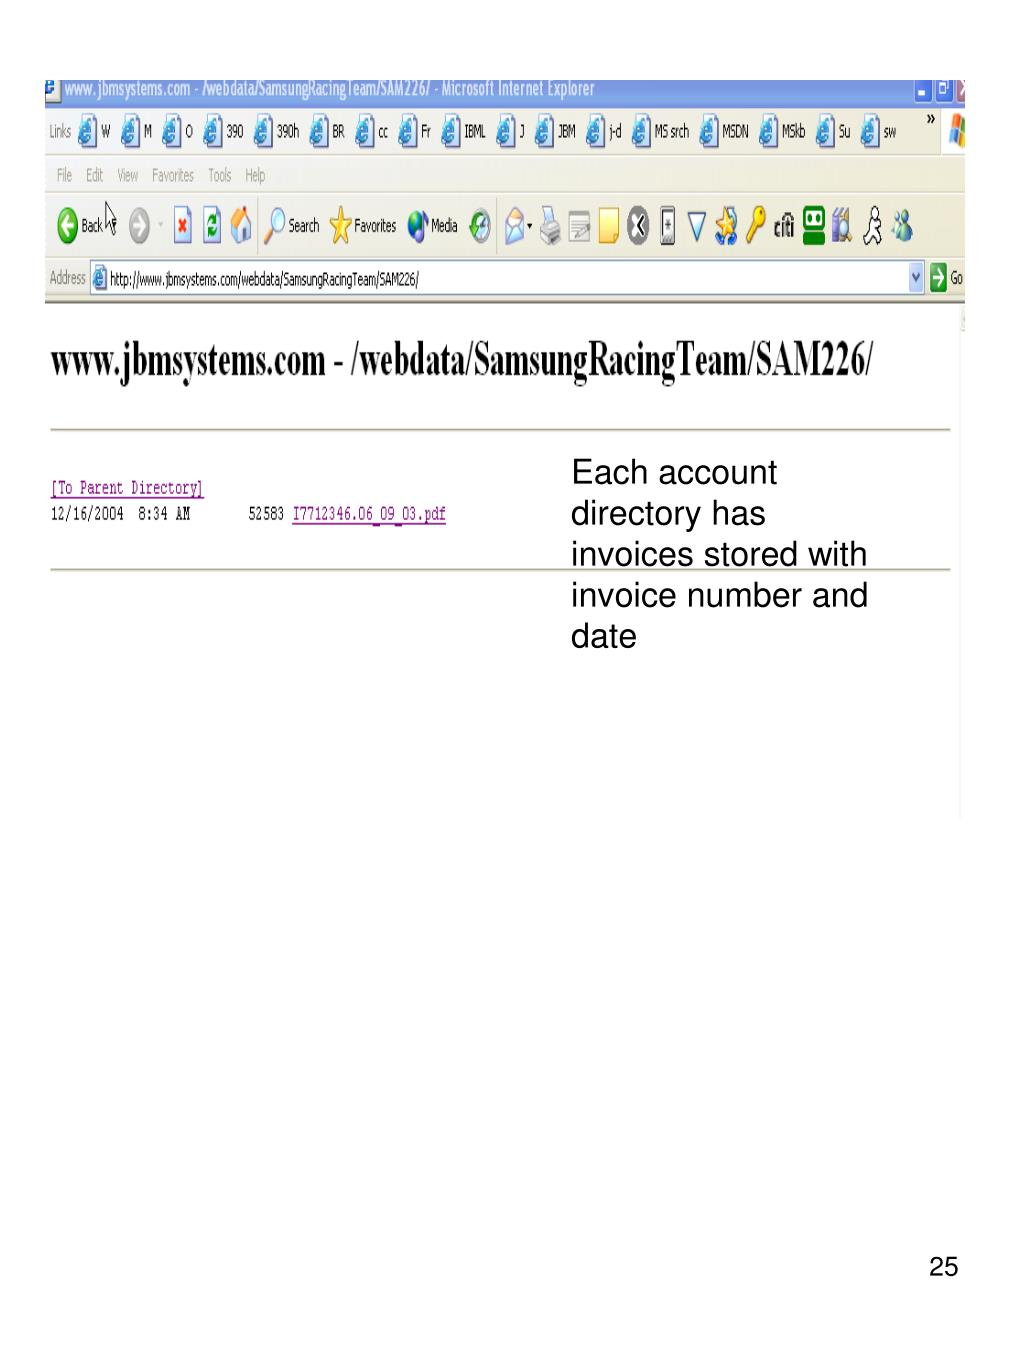 Each account directory has invoices stored with invoice number and date